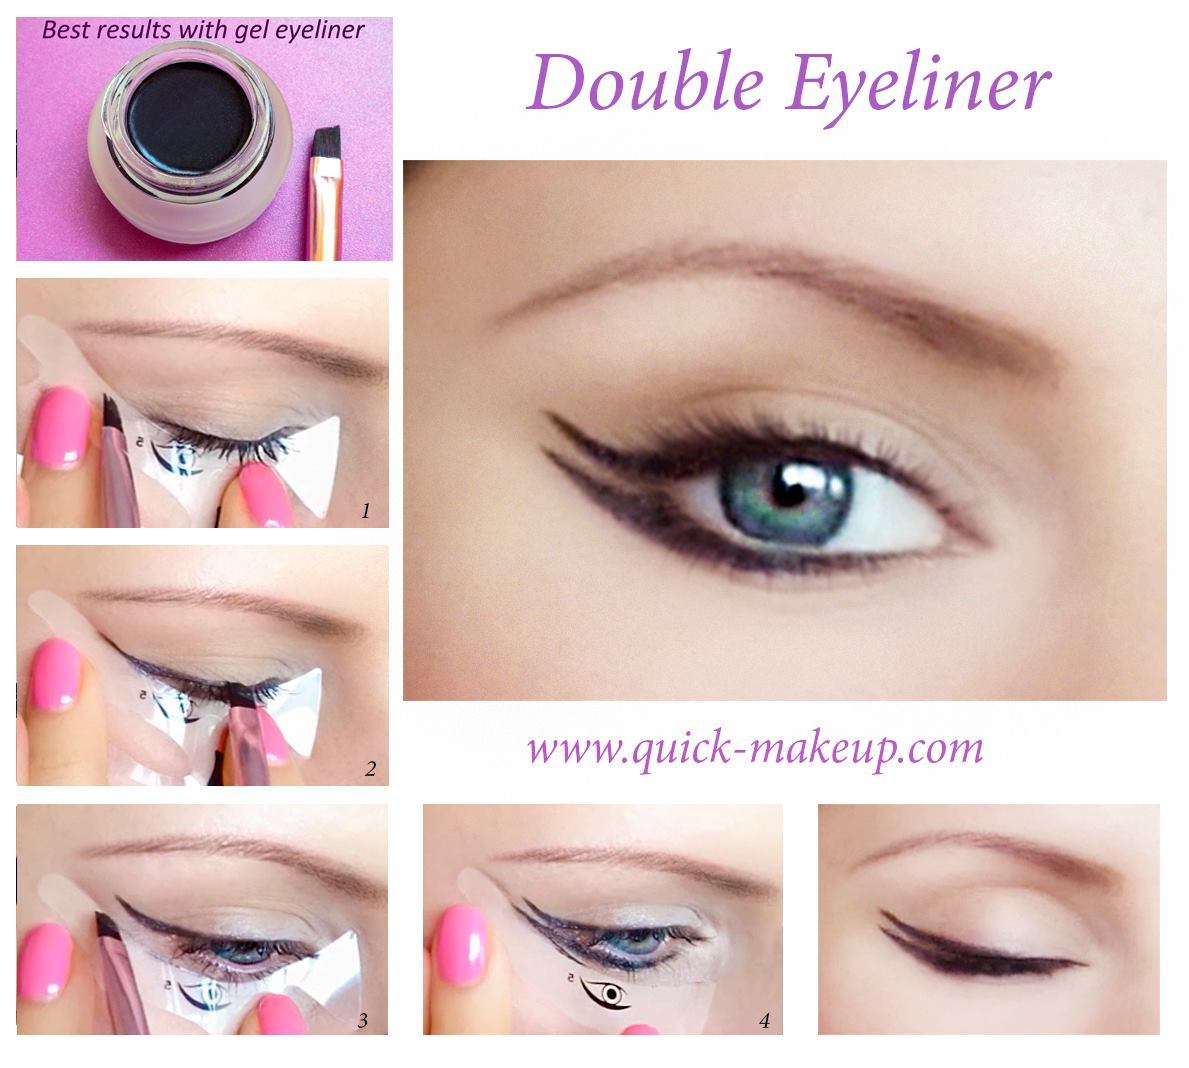 Quick Makeup Stencils - Cosmetic Tool for Applying Eyeliner, Eye Shadow, Eyebrow